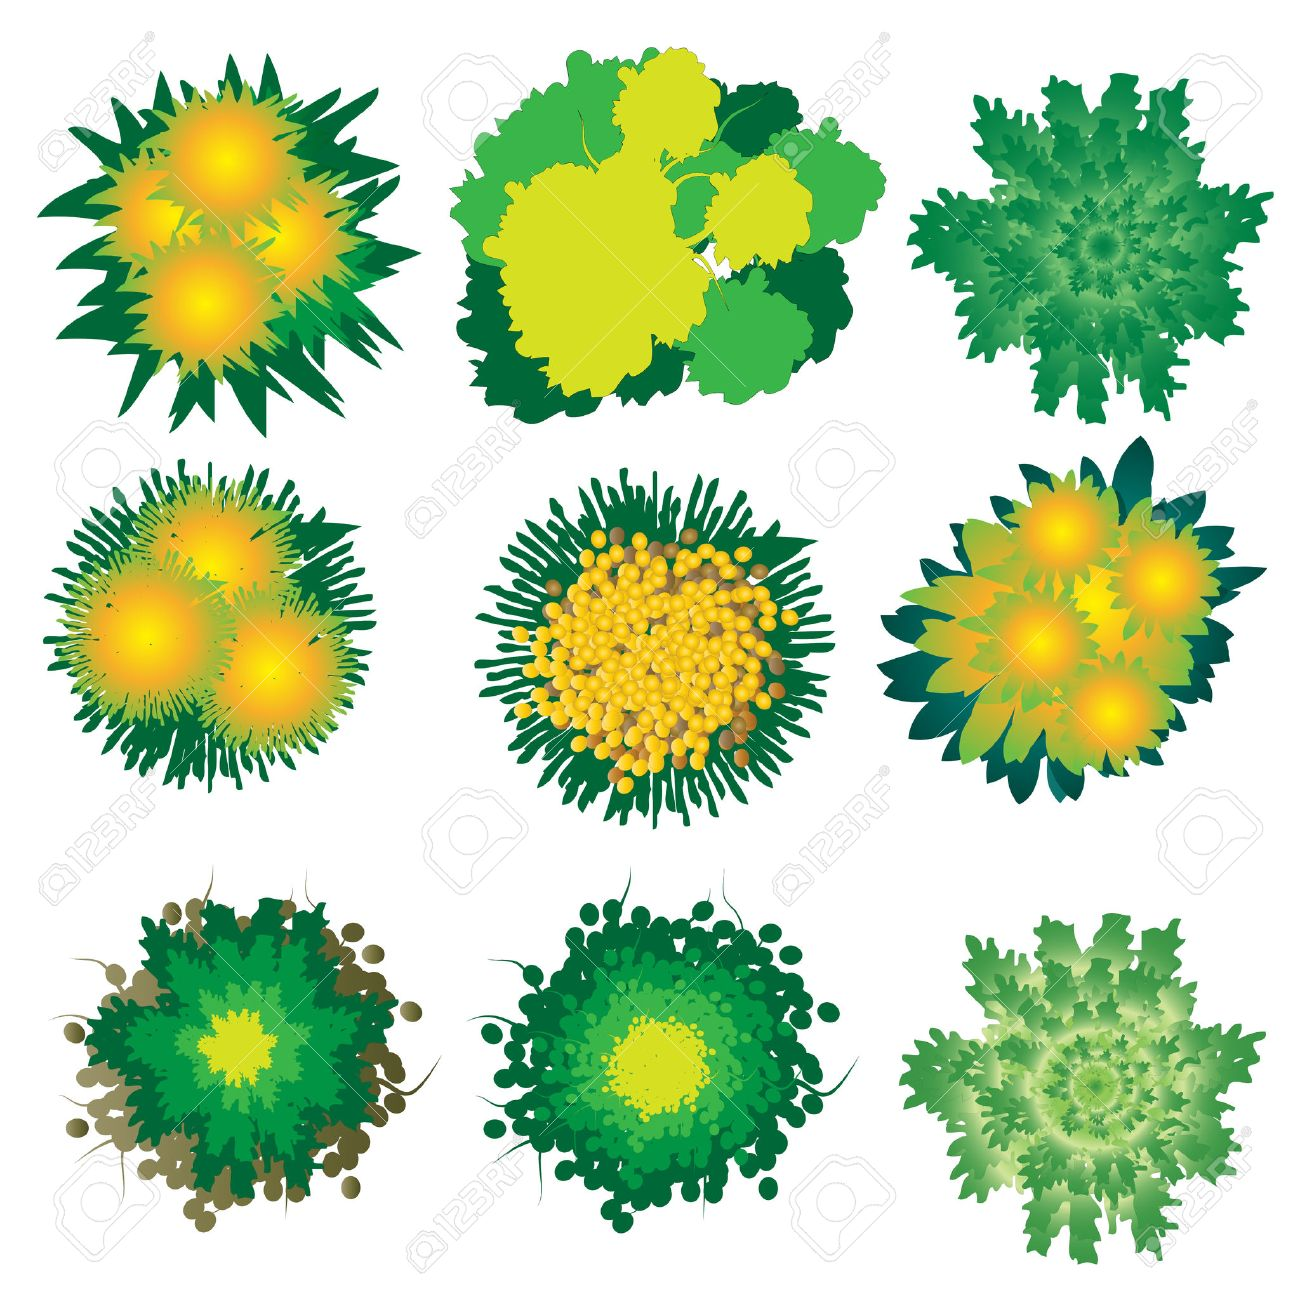 Plant top view vector in group download free vector art stock - Birds Eye View Plants And Trees Top View Set 4 For Landscape Design Vector